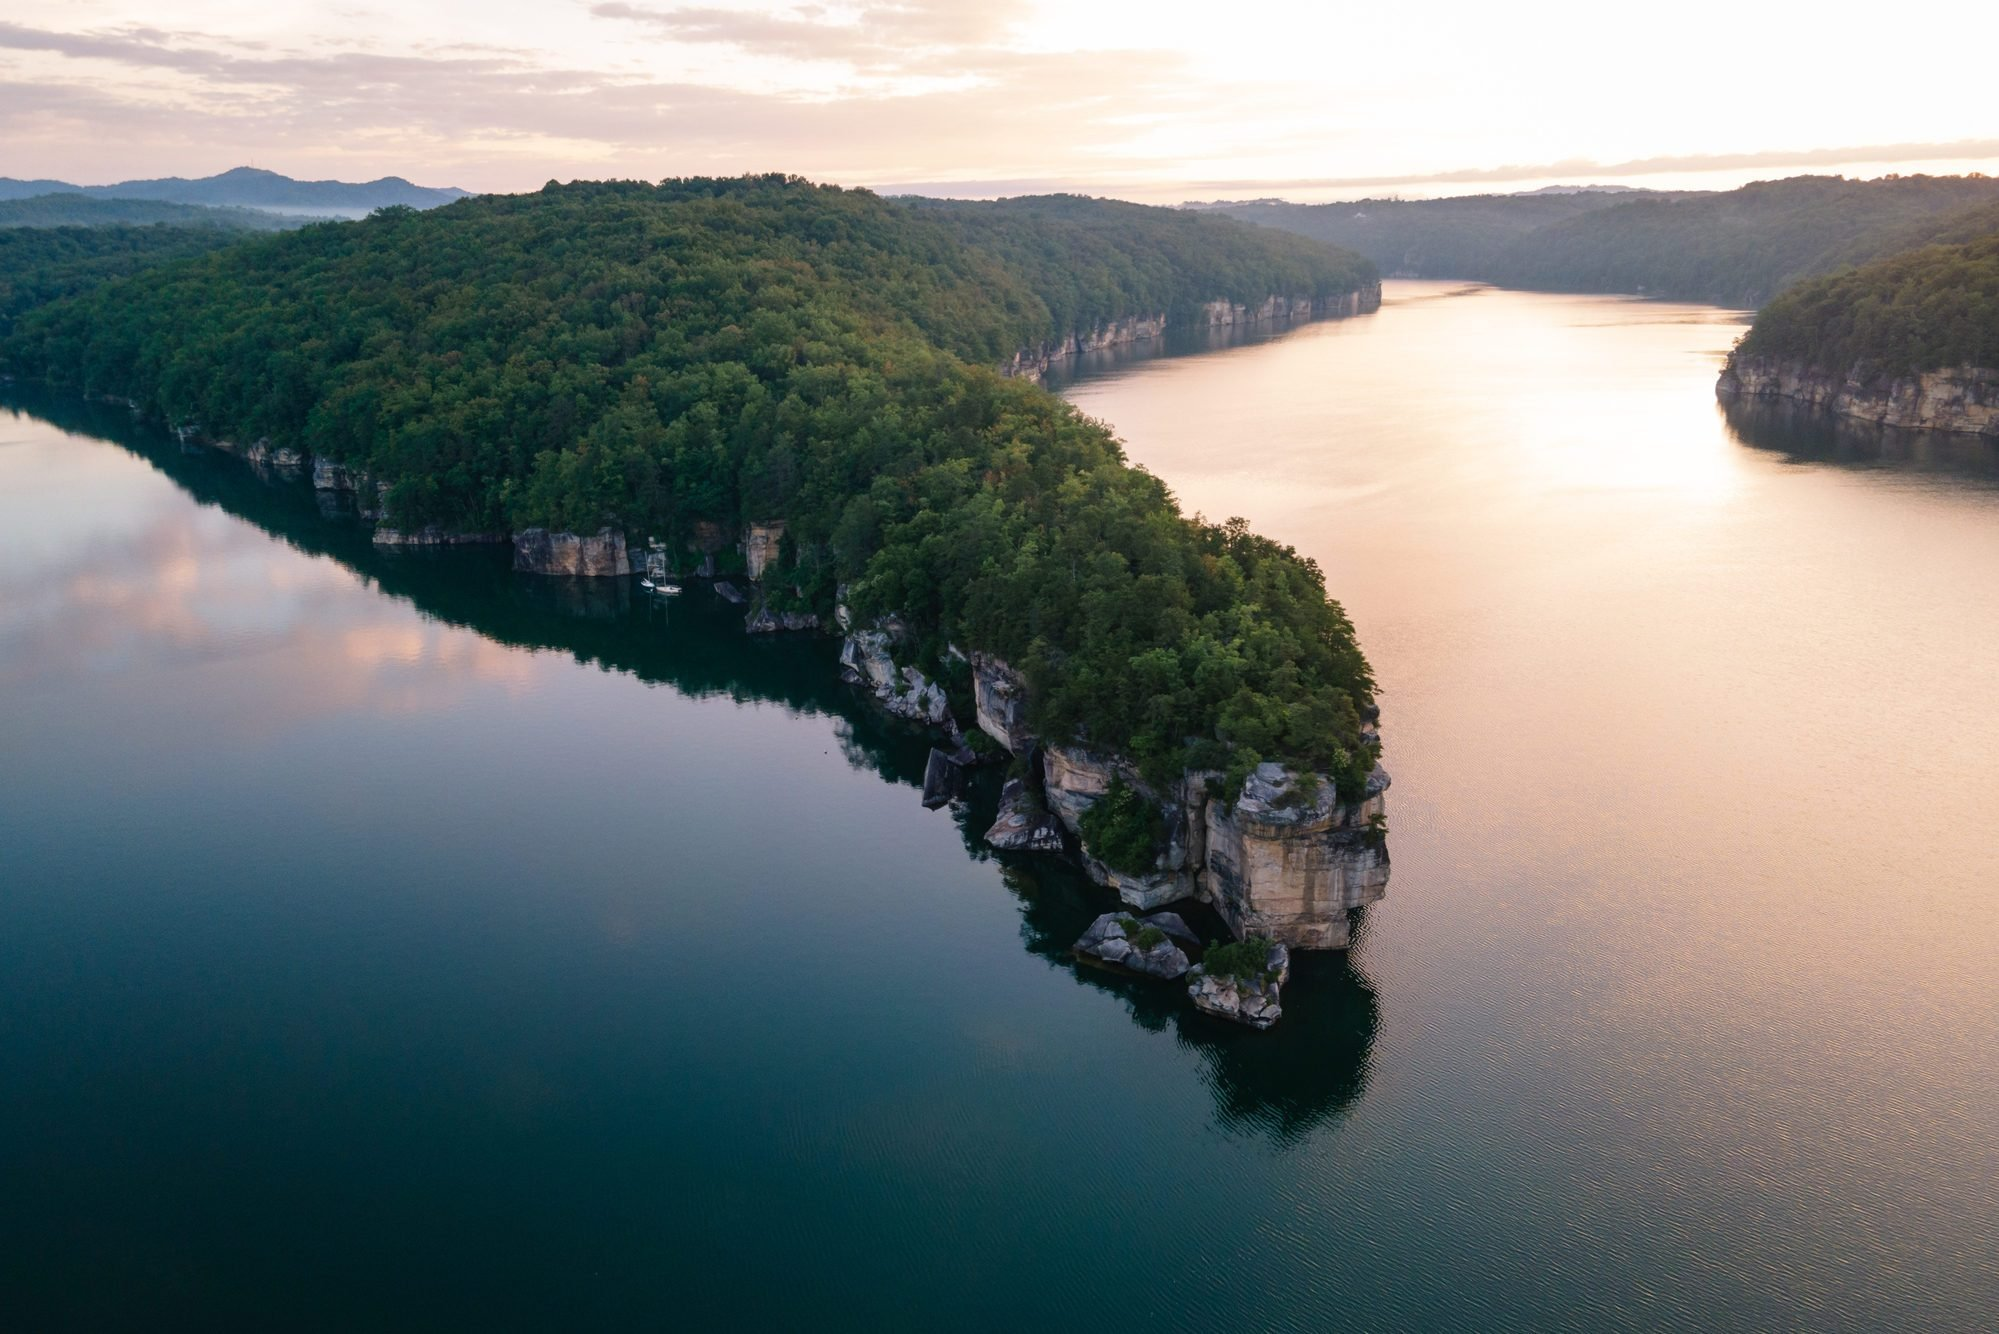 Aerial View of Long Point Peninsula at Summersville Lake, West Virginia